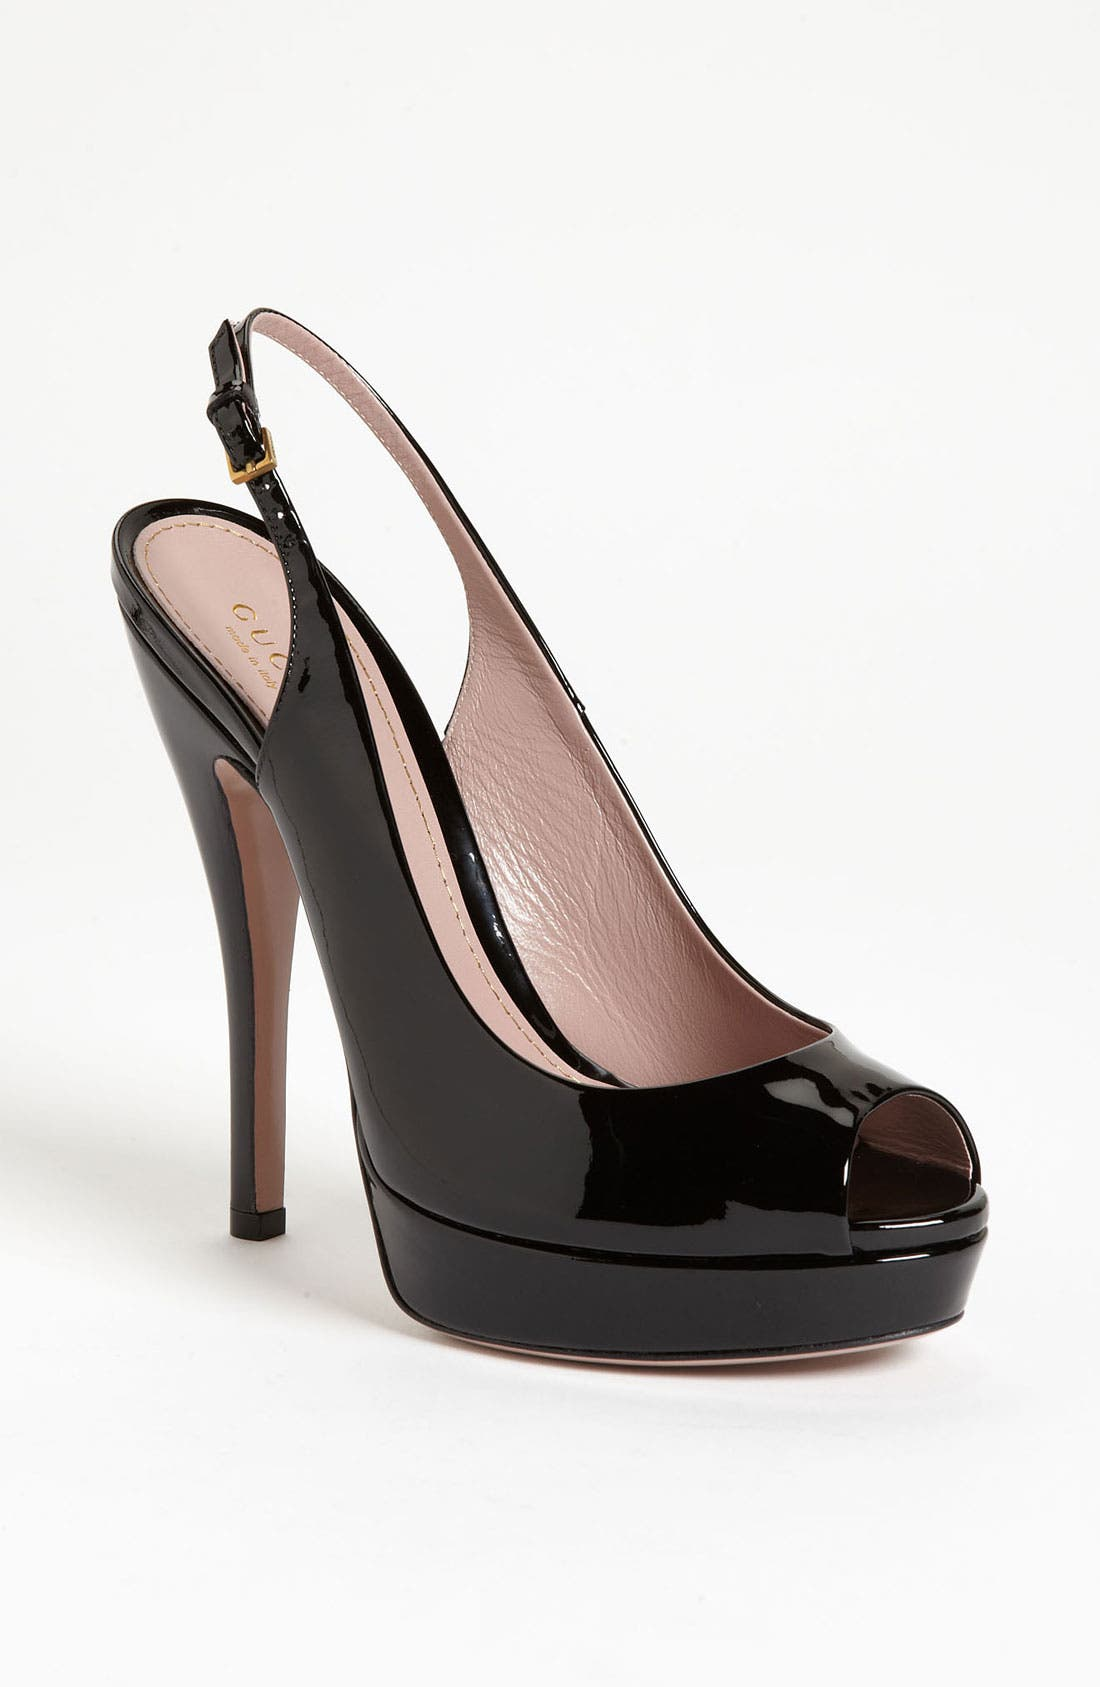 Alternate Image 1 Selected - Gucci 'Lisbeth' Slingback Pump